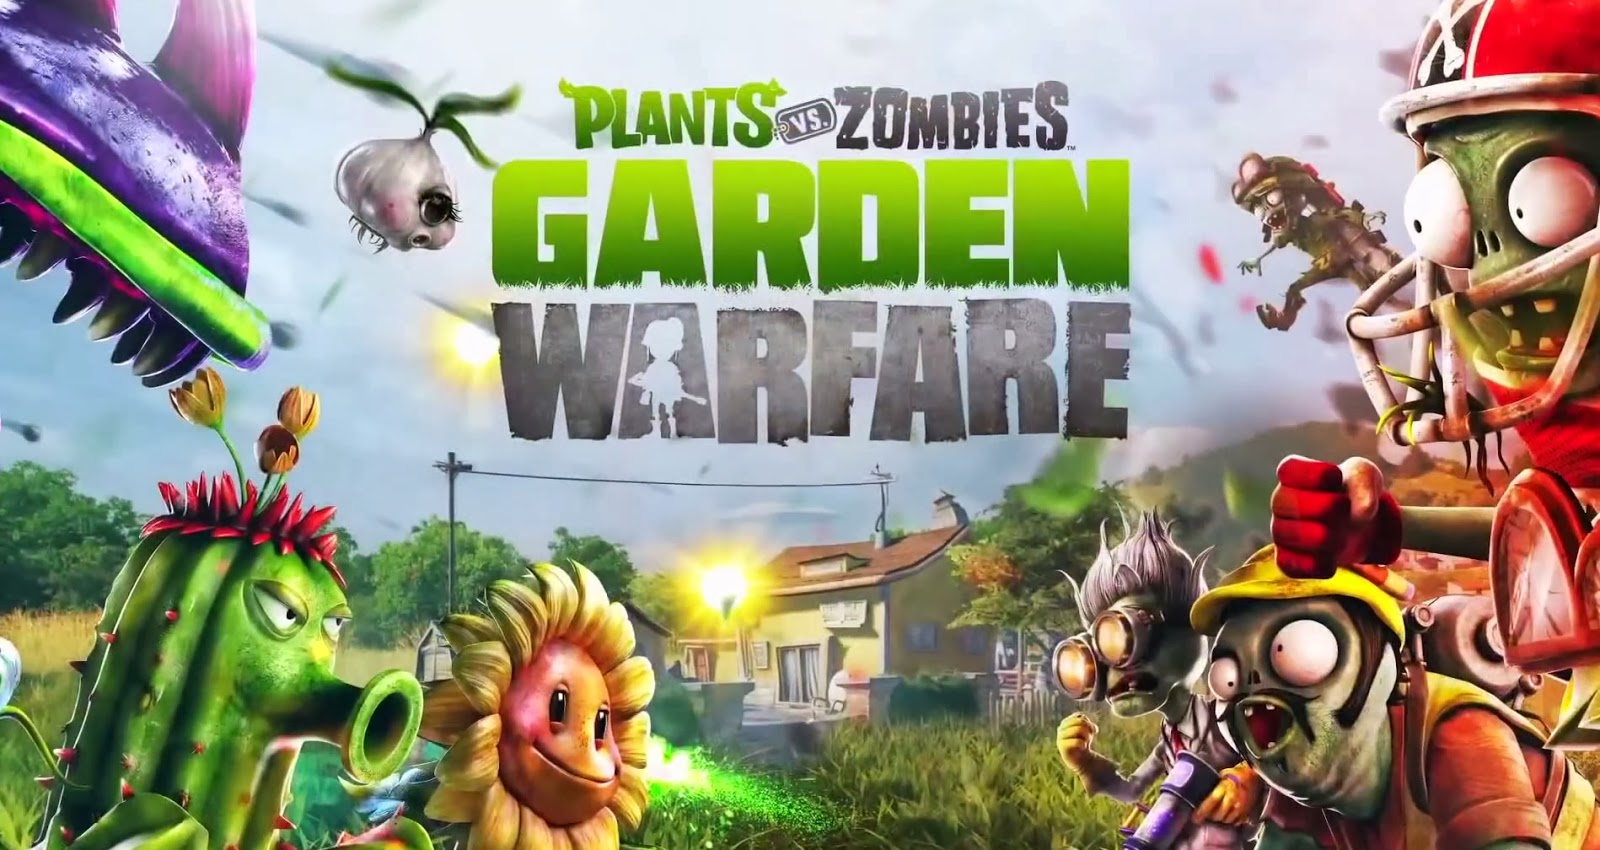 Plants-vs.-Zombies-Garden-Warfare